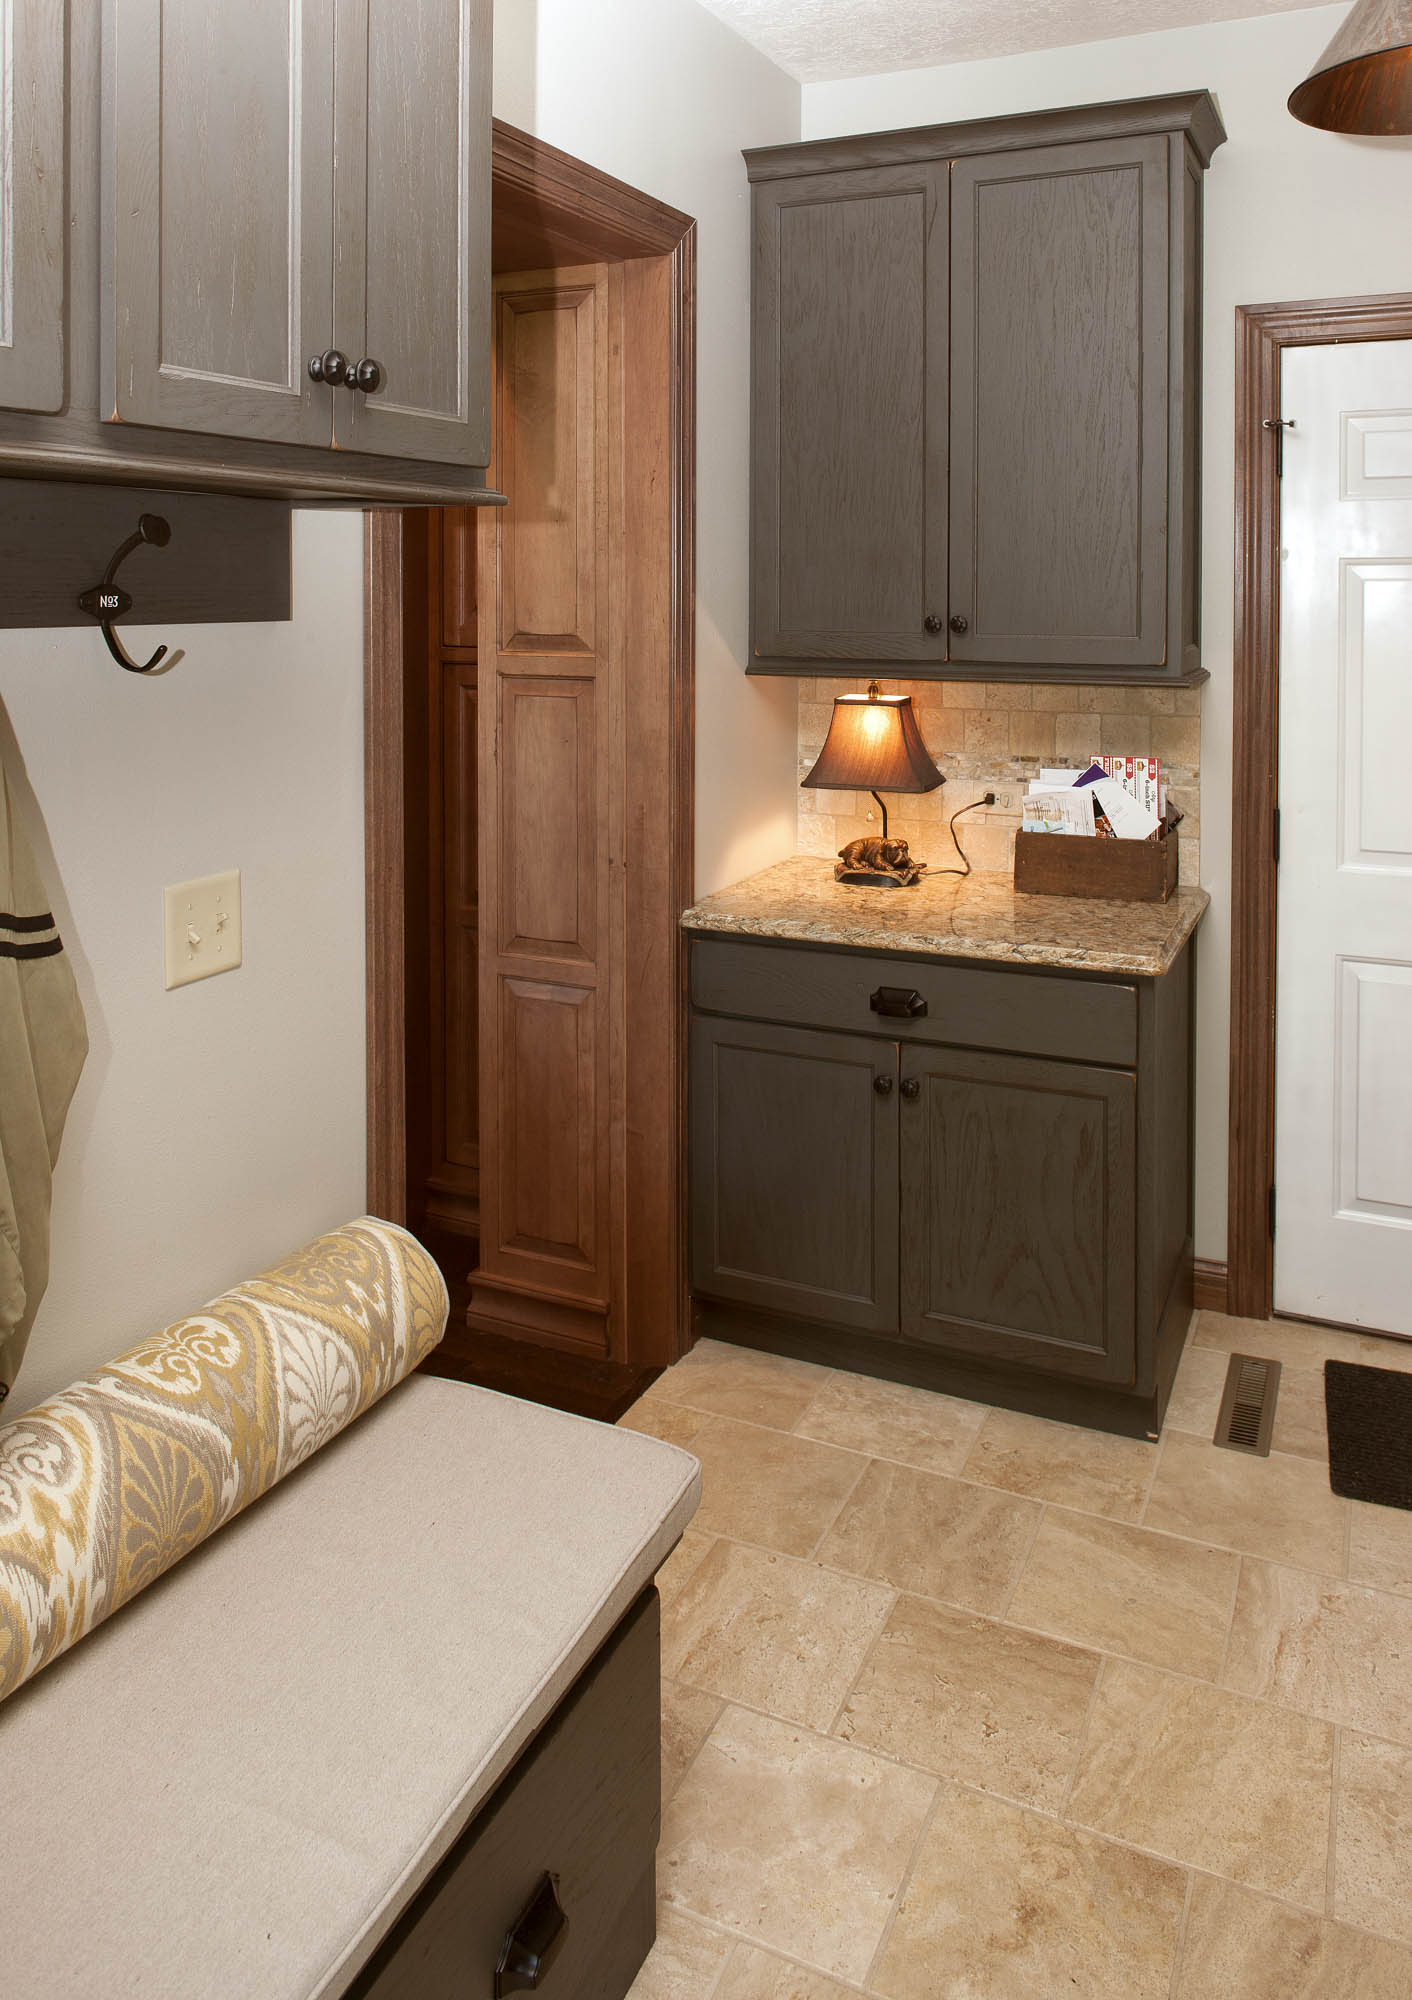 Painted laundry room cabinets in Vintage Graphite